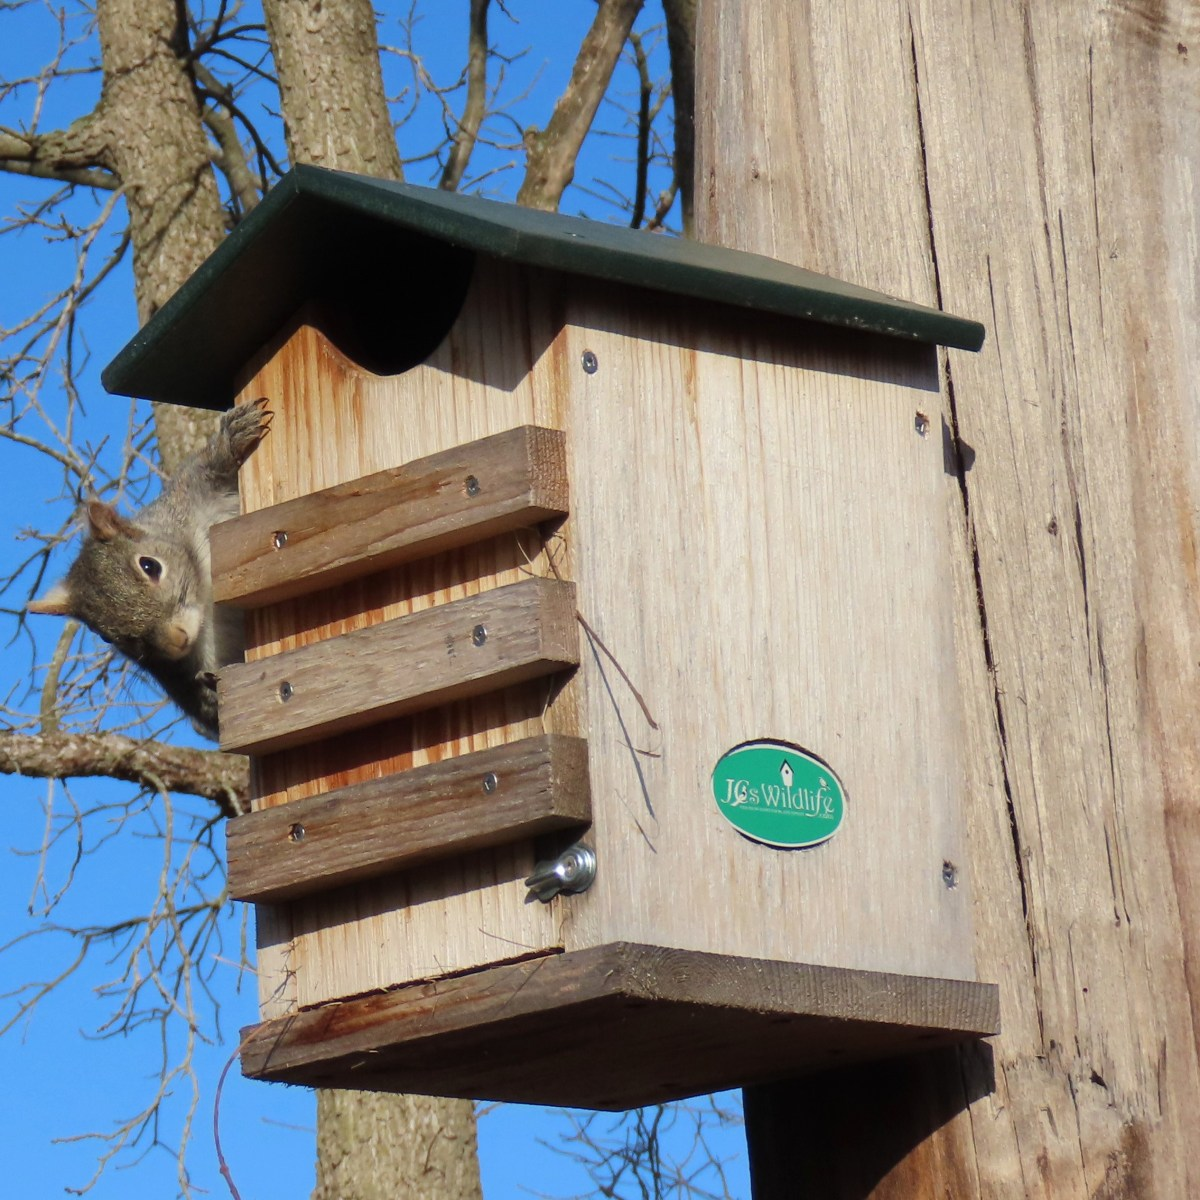 A squirrel climbs around the side of a nesting box that's attached to a tree